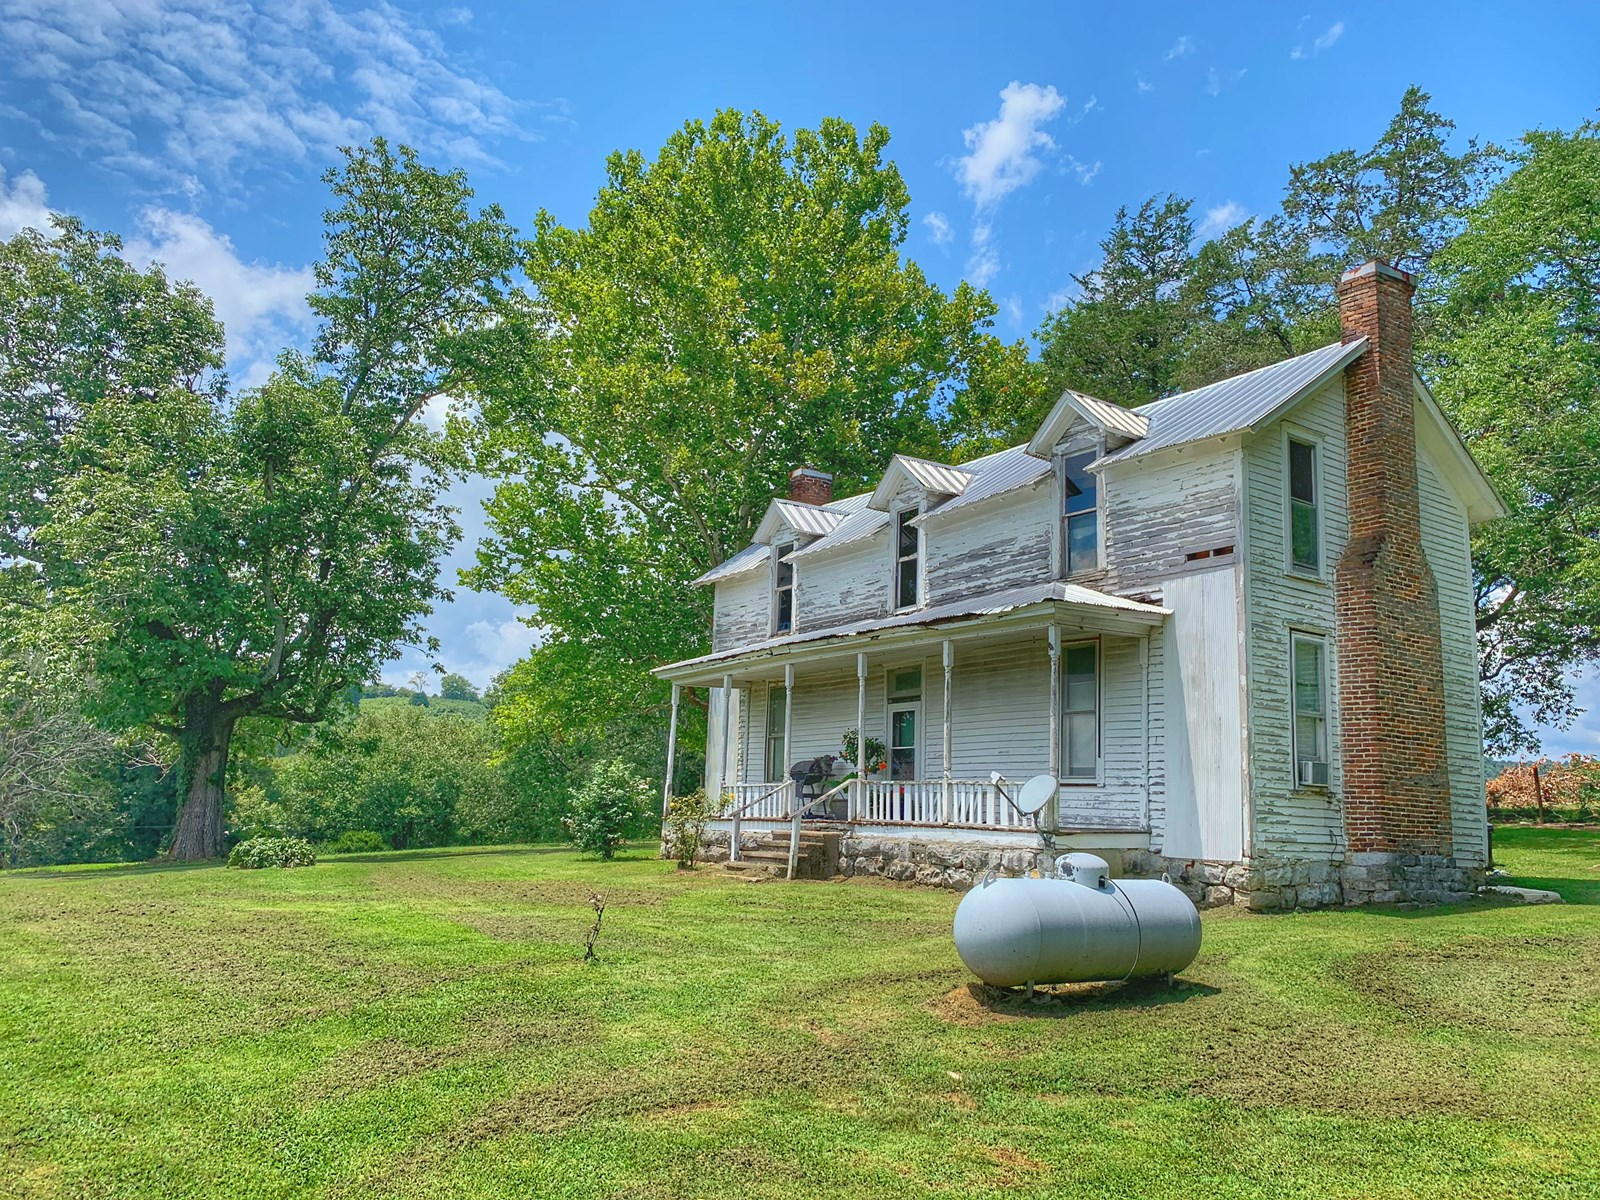 Antebellum Home on 36 Acres For Sale in Middle Tennessee